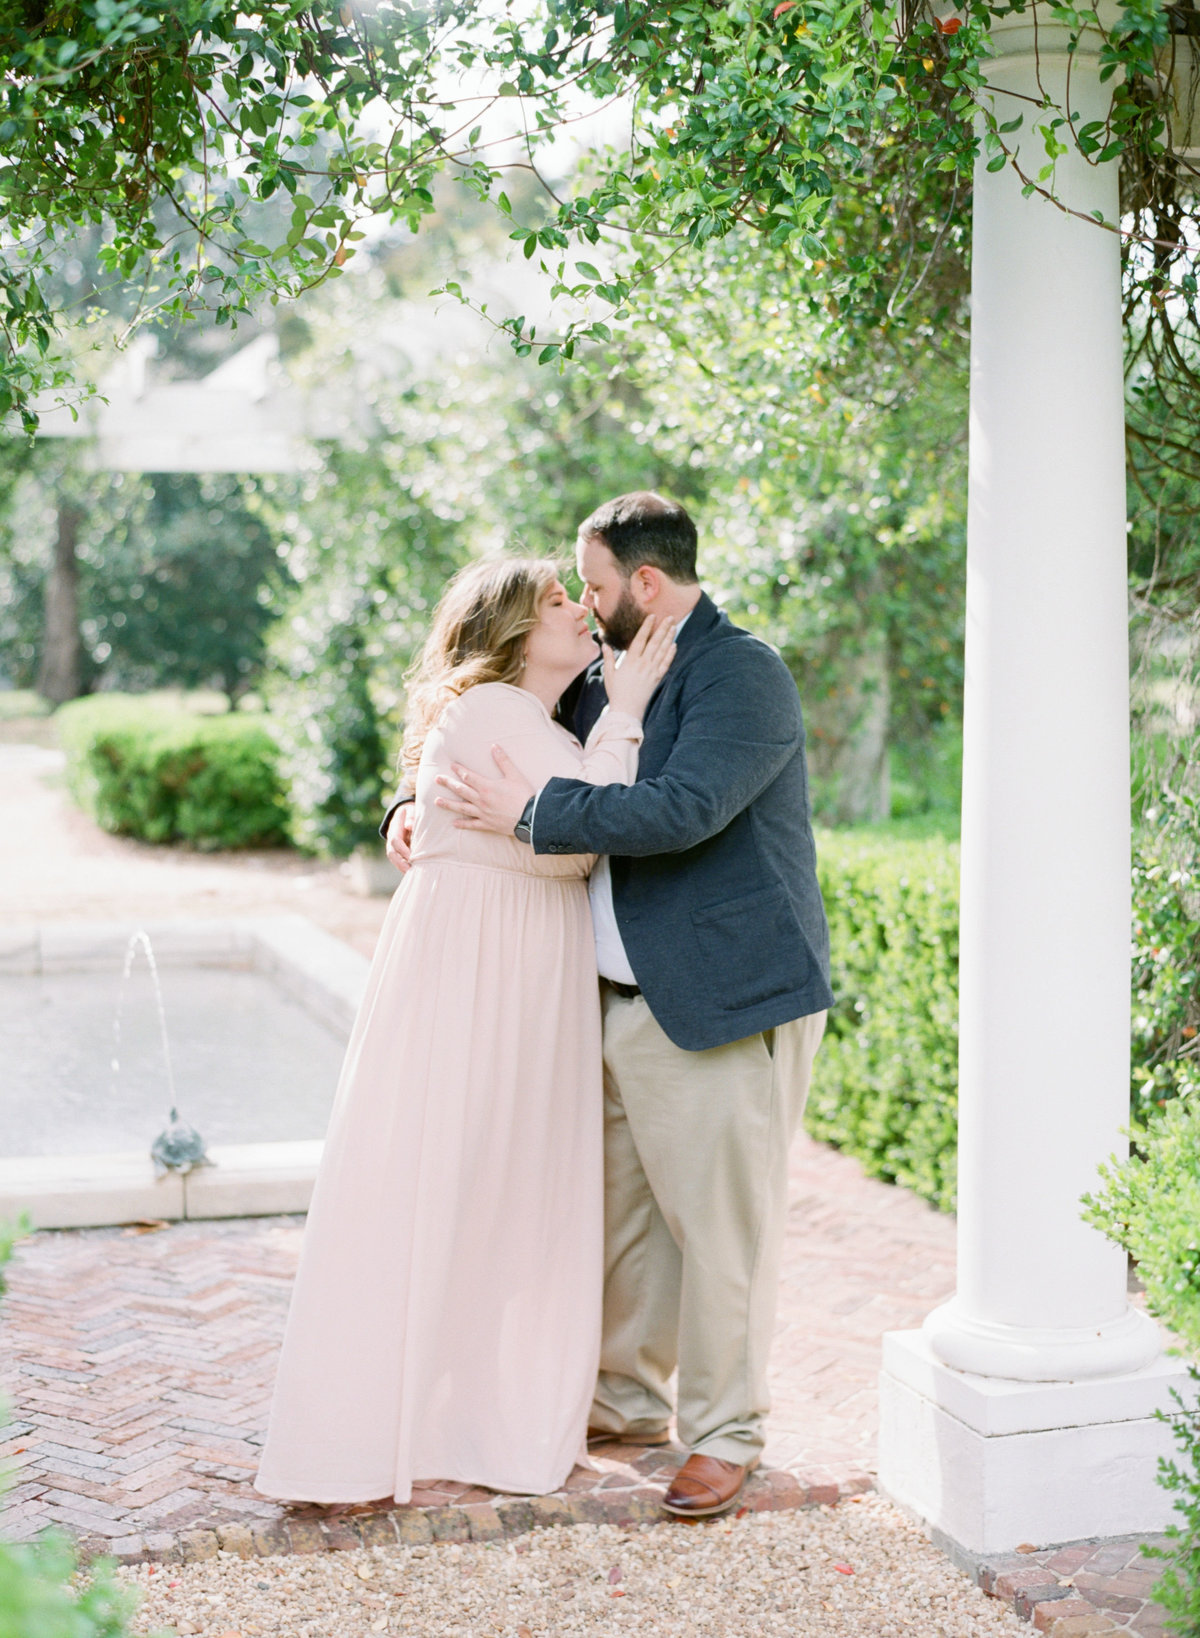 CourtneyWoodhamPhoto-44